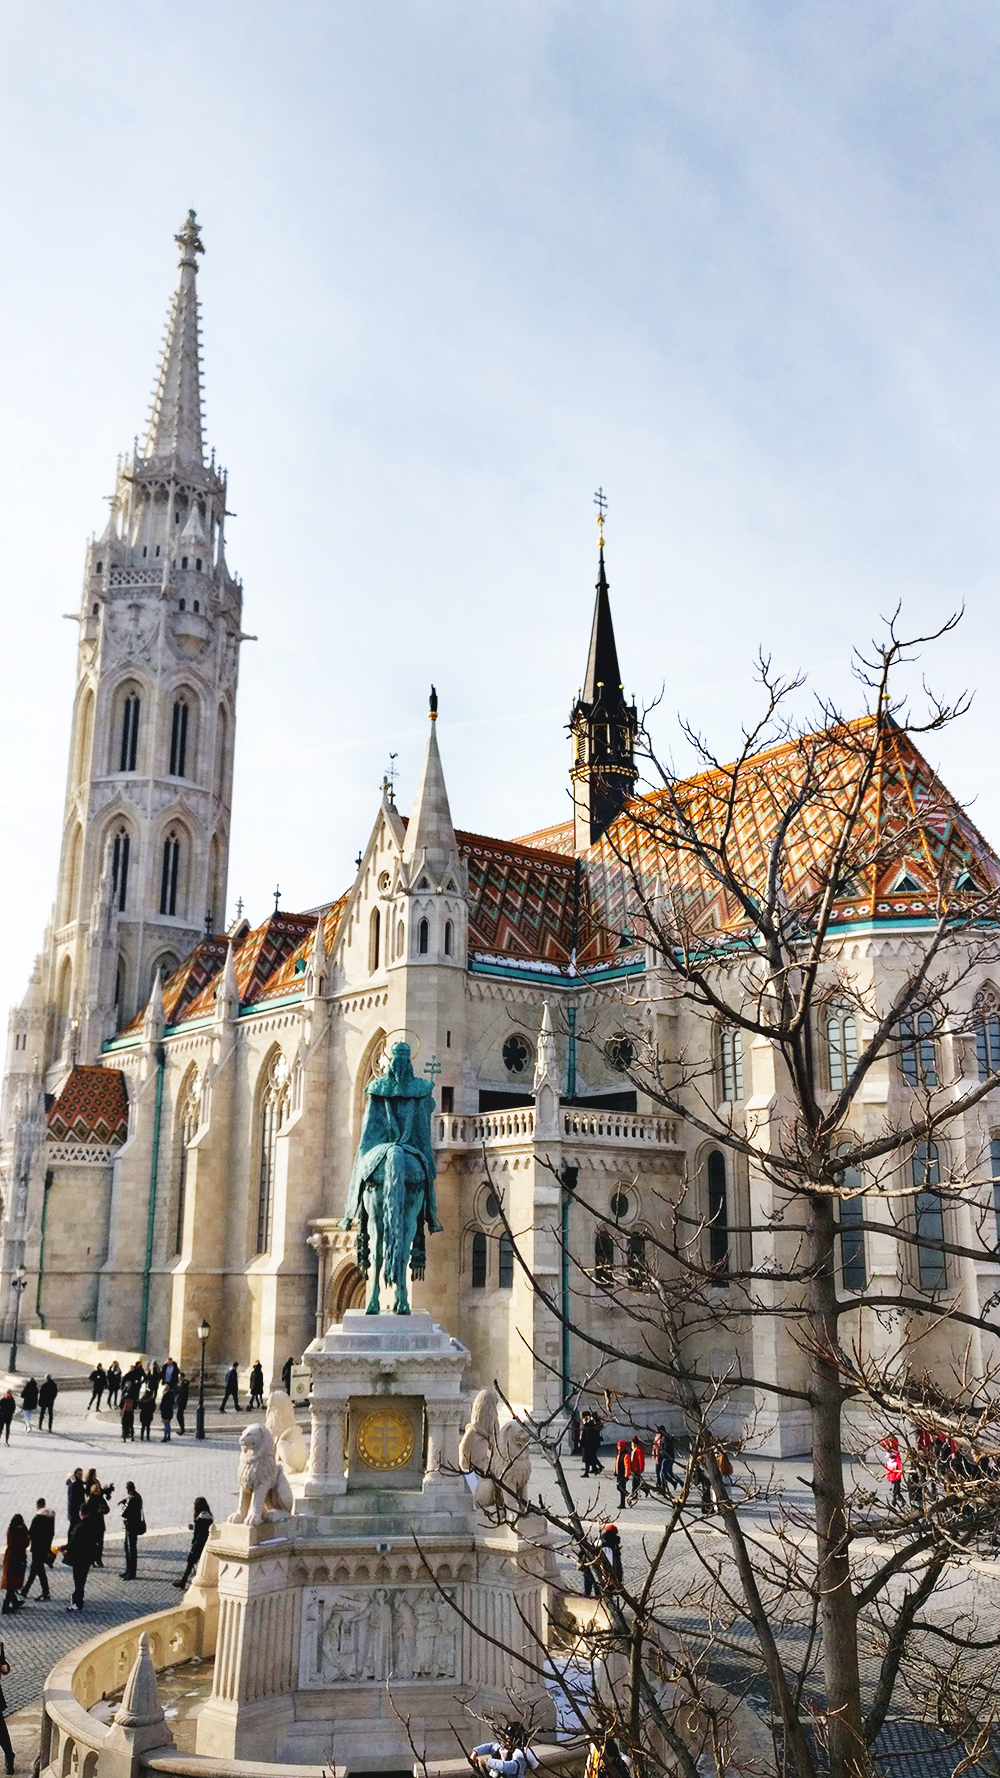 Matthias Church, a must-see attraction - A first-timer's guide to Budapest - Things to know about visiting Budapest, Hungary | Aliz's Wonderland #Budapest #Hungary #travel #travelguide #Budapestguide